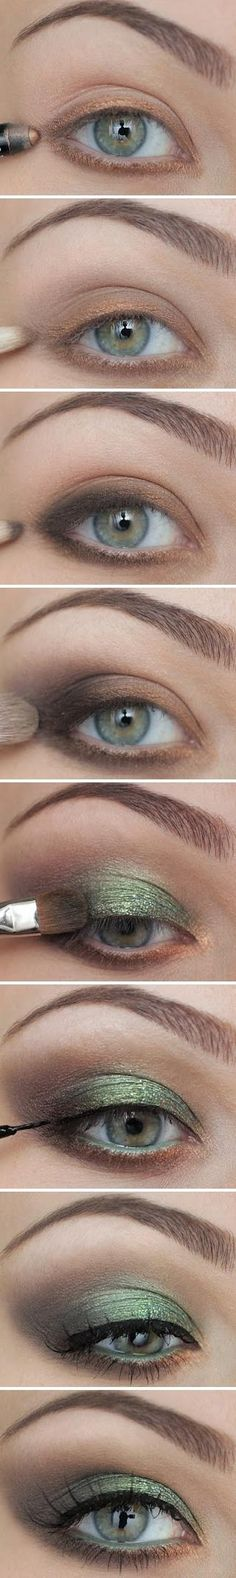 Green eye smoky eye